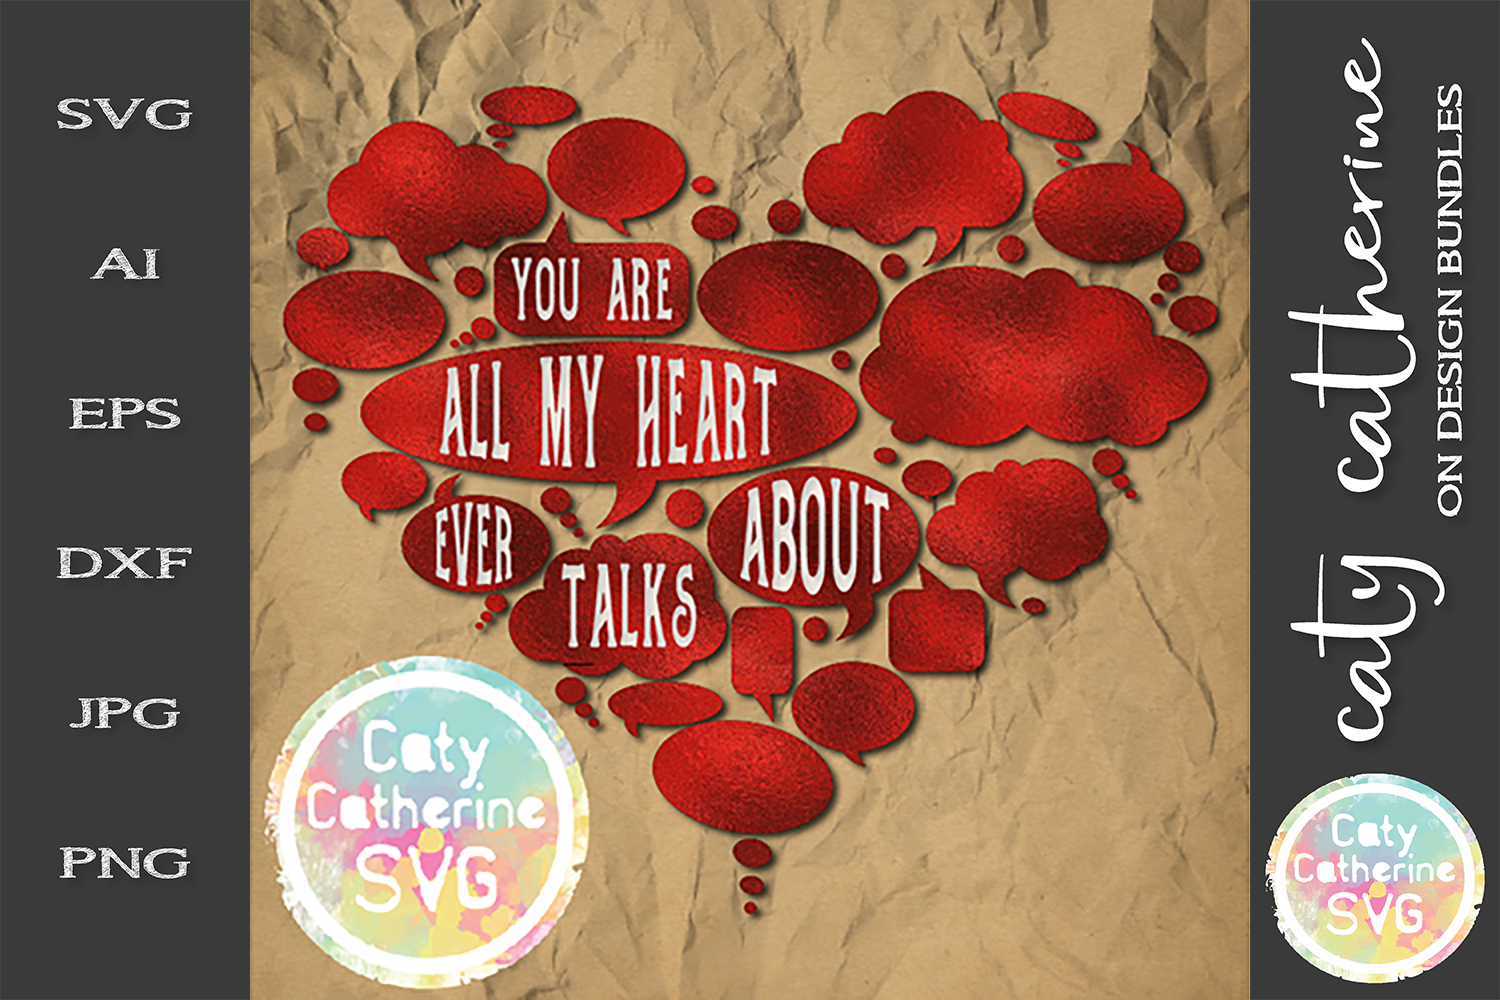 You Are All My Heart Ever Talks About SVG Cut File example image 1